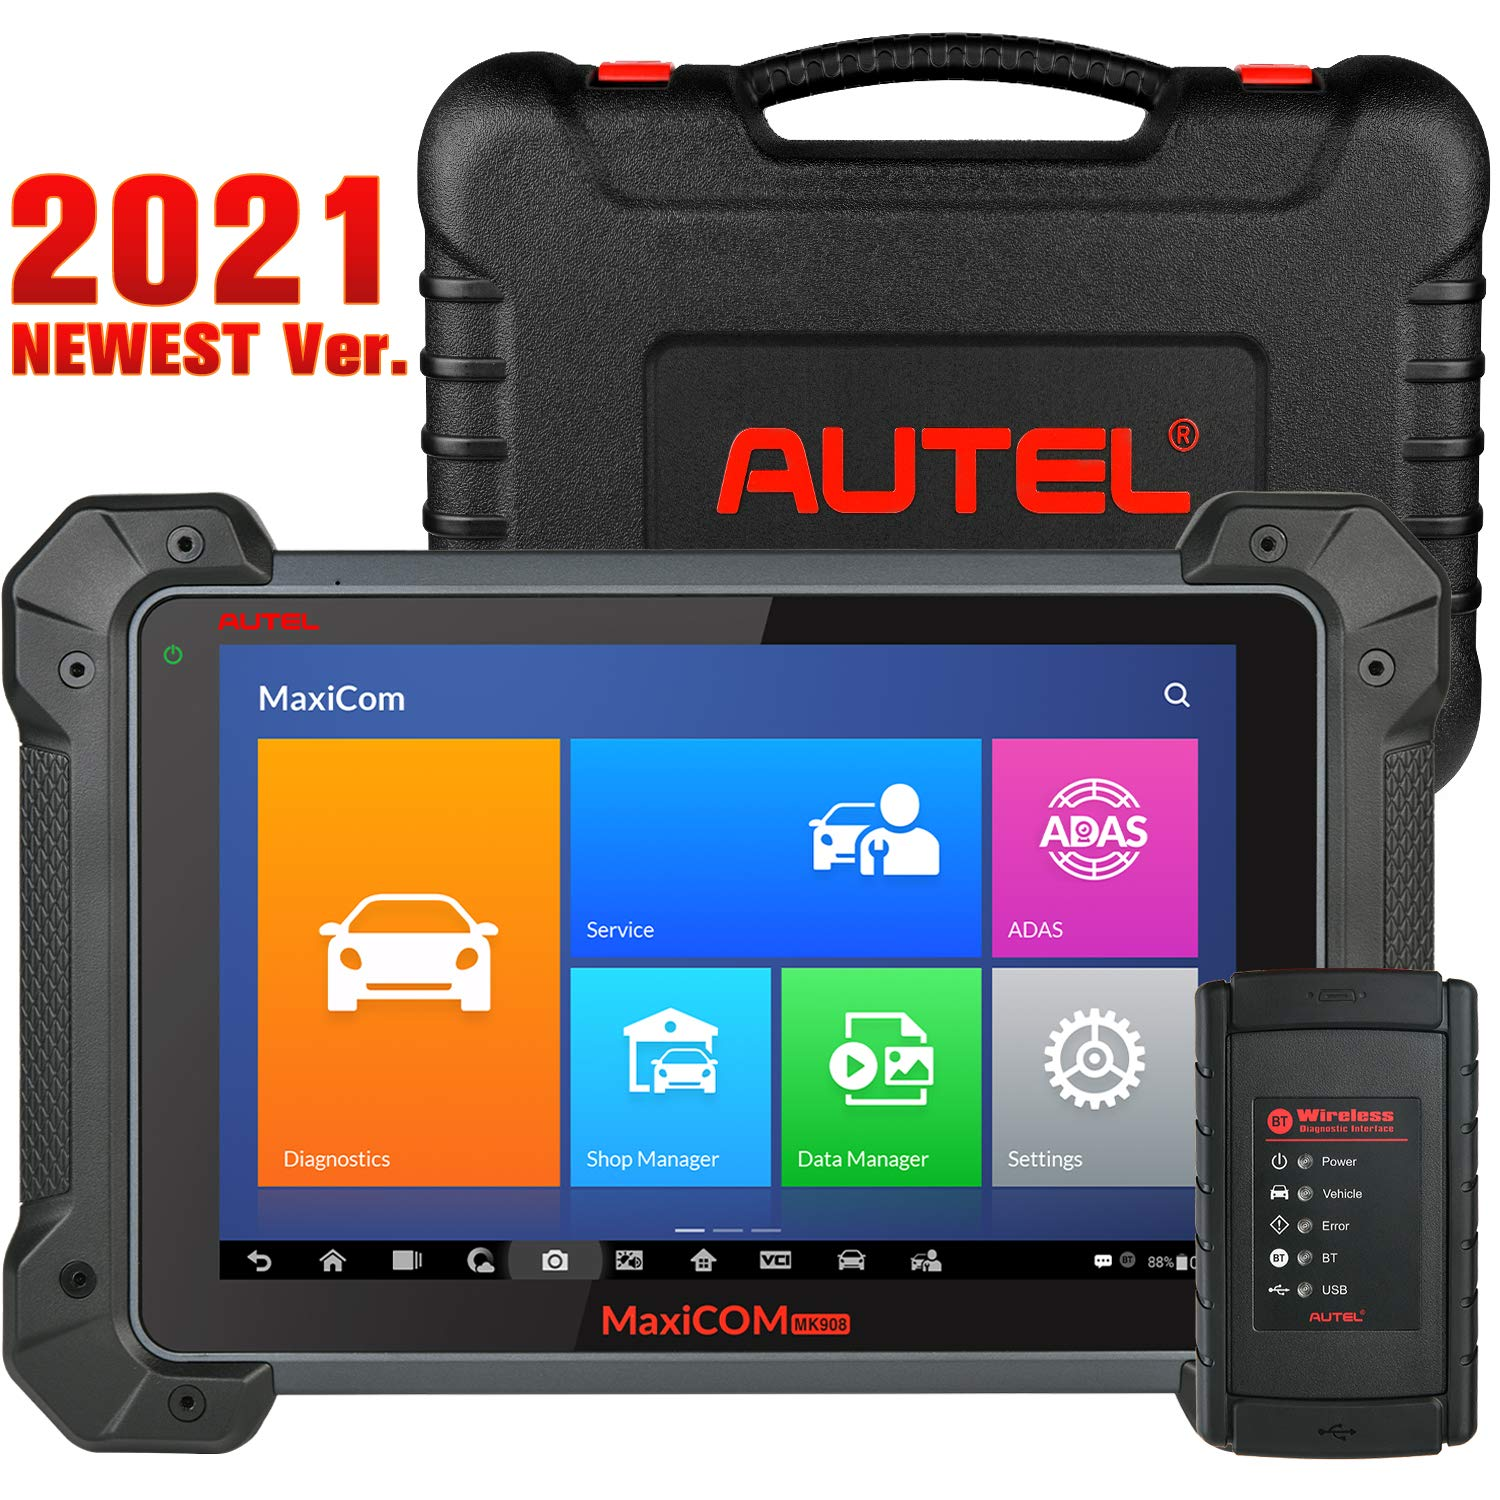 Autel MaxiCOM MK908 (Upgraded of MS906BT, Alternative for MK908P), 2021 Newest Automotive Scan Tool with Advanced ECU Coding, Full Bi-Directional Control, OE-Level All Systems Diagnosis & 31+ Services